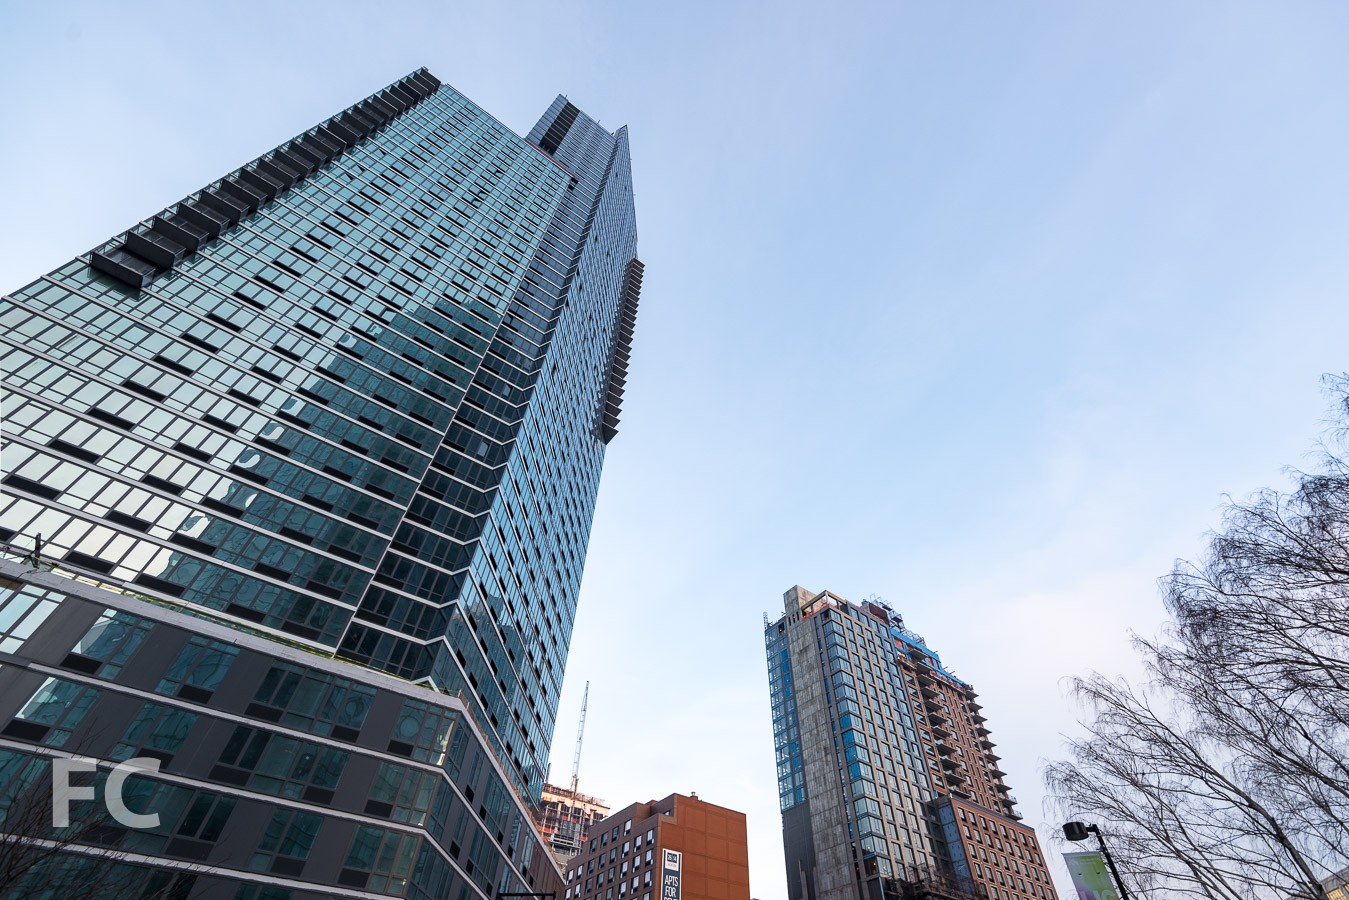 Looking up at The Hayden (left), with Watermark Court Square (right) and The Edison (far right) in the background.